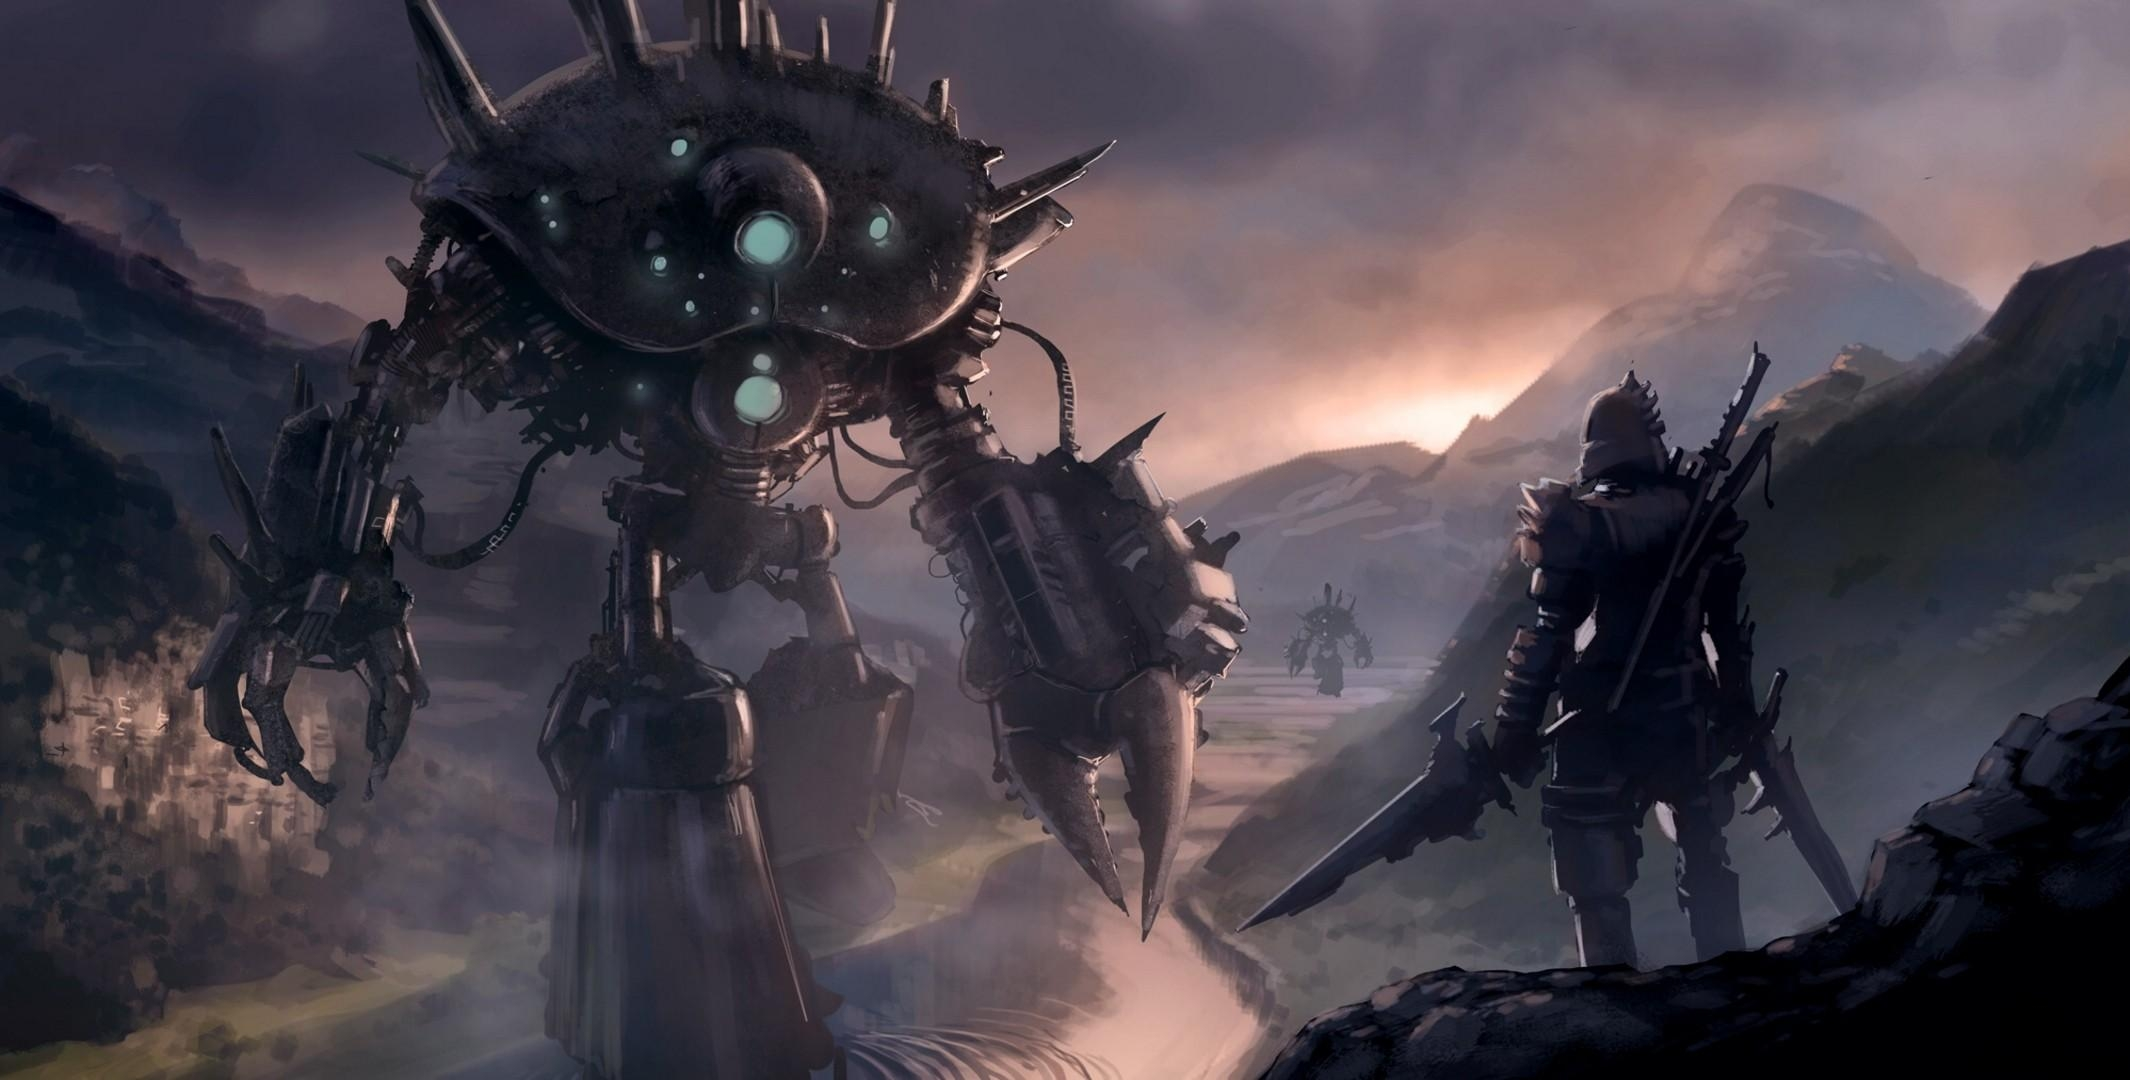 119179 download wallpaper Fantasy, Weapon, Human, Person, Robot, Cyborg screensavers and pictures for free